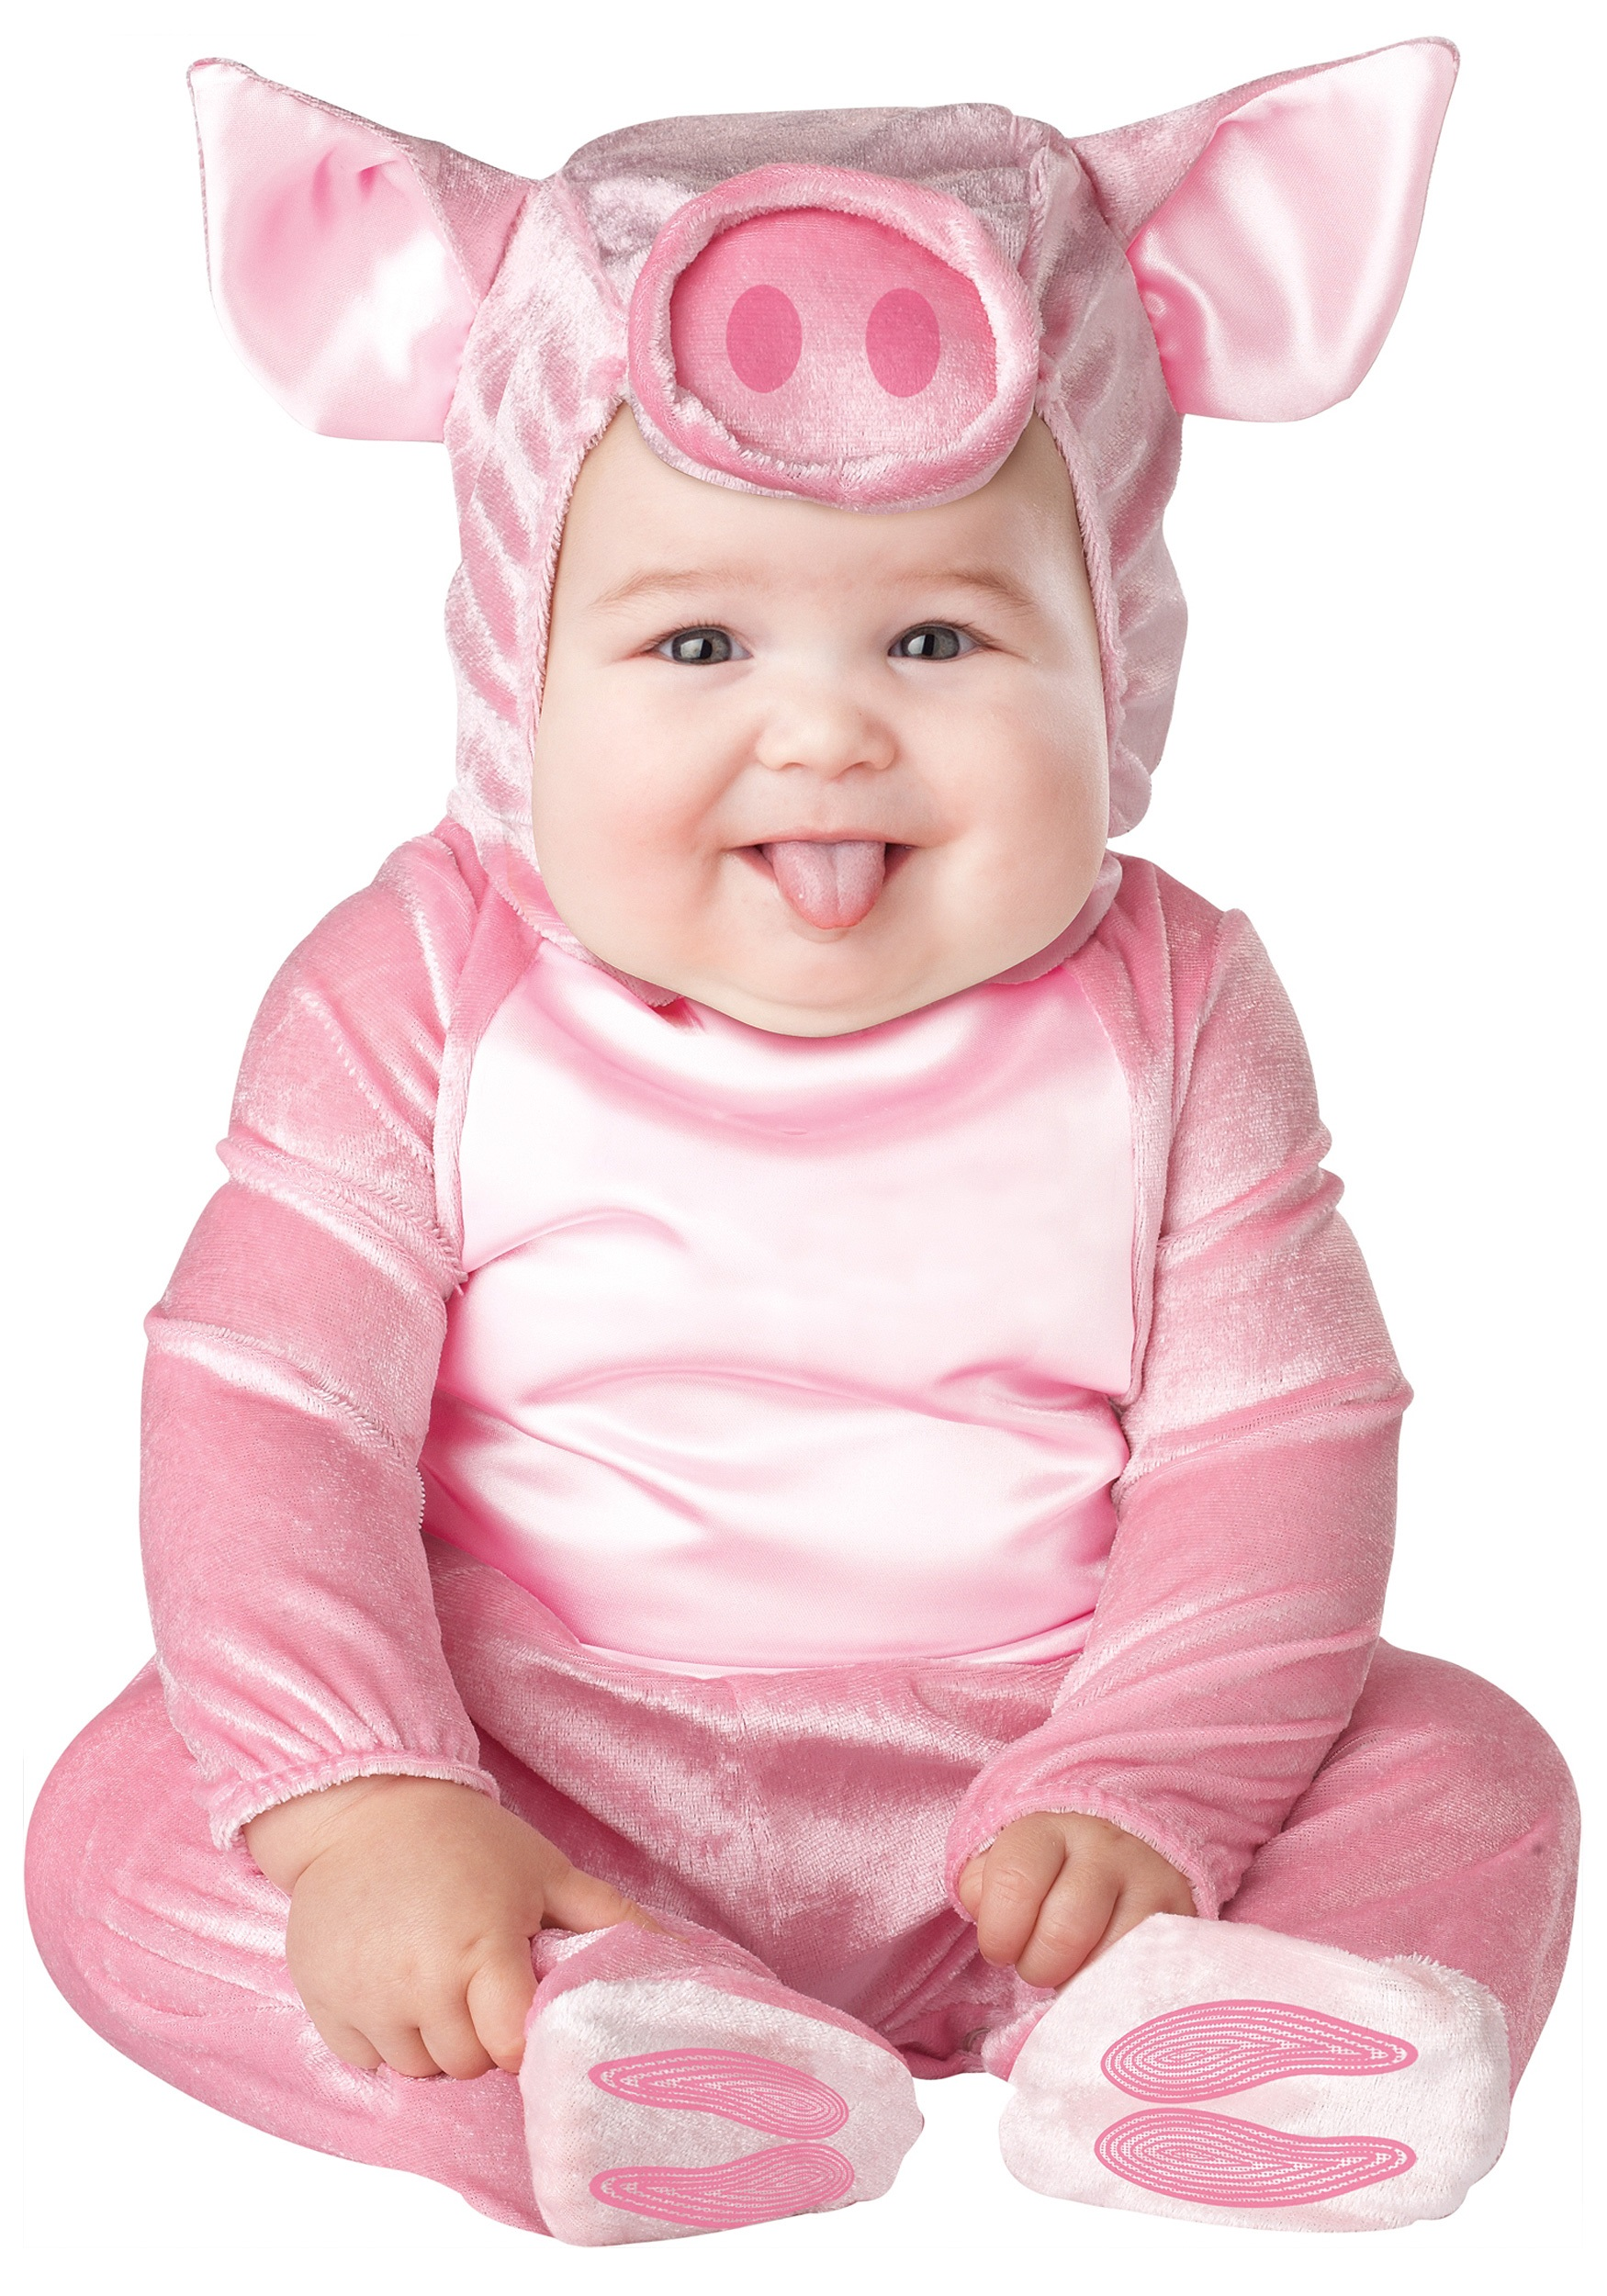 Halloween is the perfect opportunity to capitalize on the already cherubic and precious nature of these little ones, and one of our absolutely darling little Halloween costumes is going to bring you all sorts of ooo's, ahhhs, and